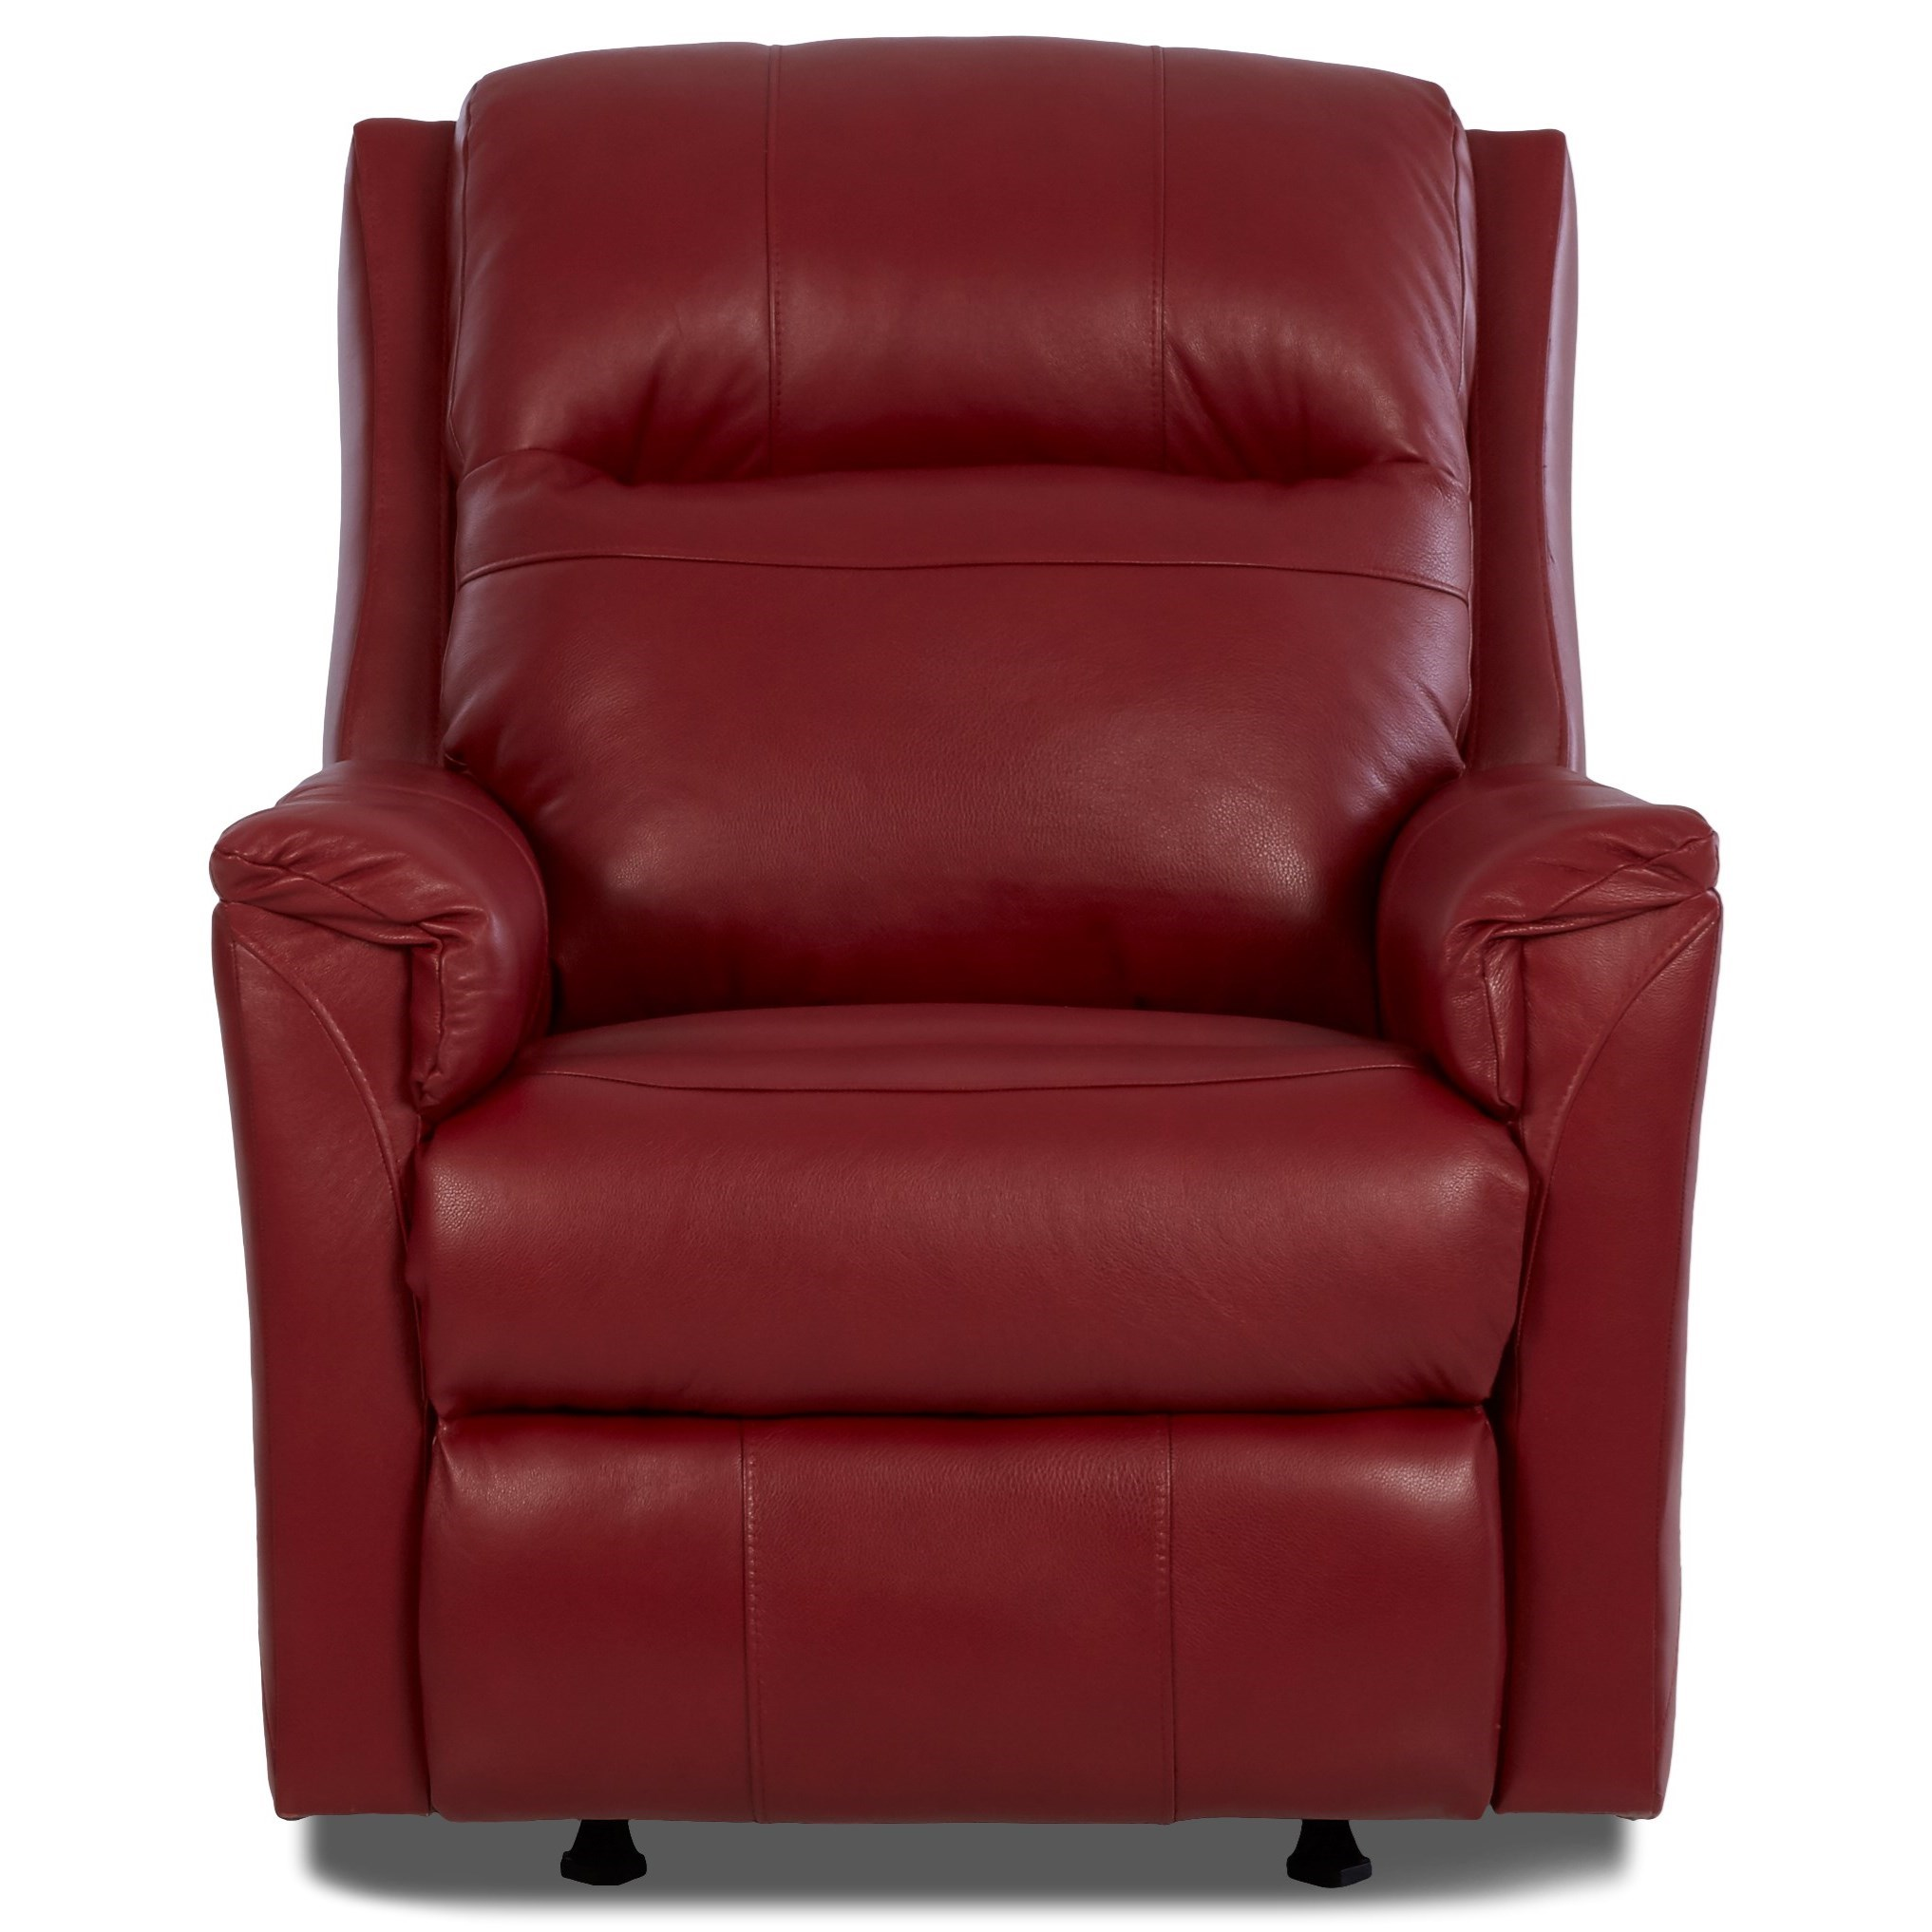 Klaussner Evans Power Recliner with Power Headrest - Item Number: LV88103-6 PWRC